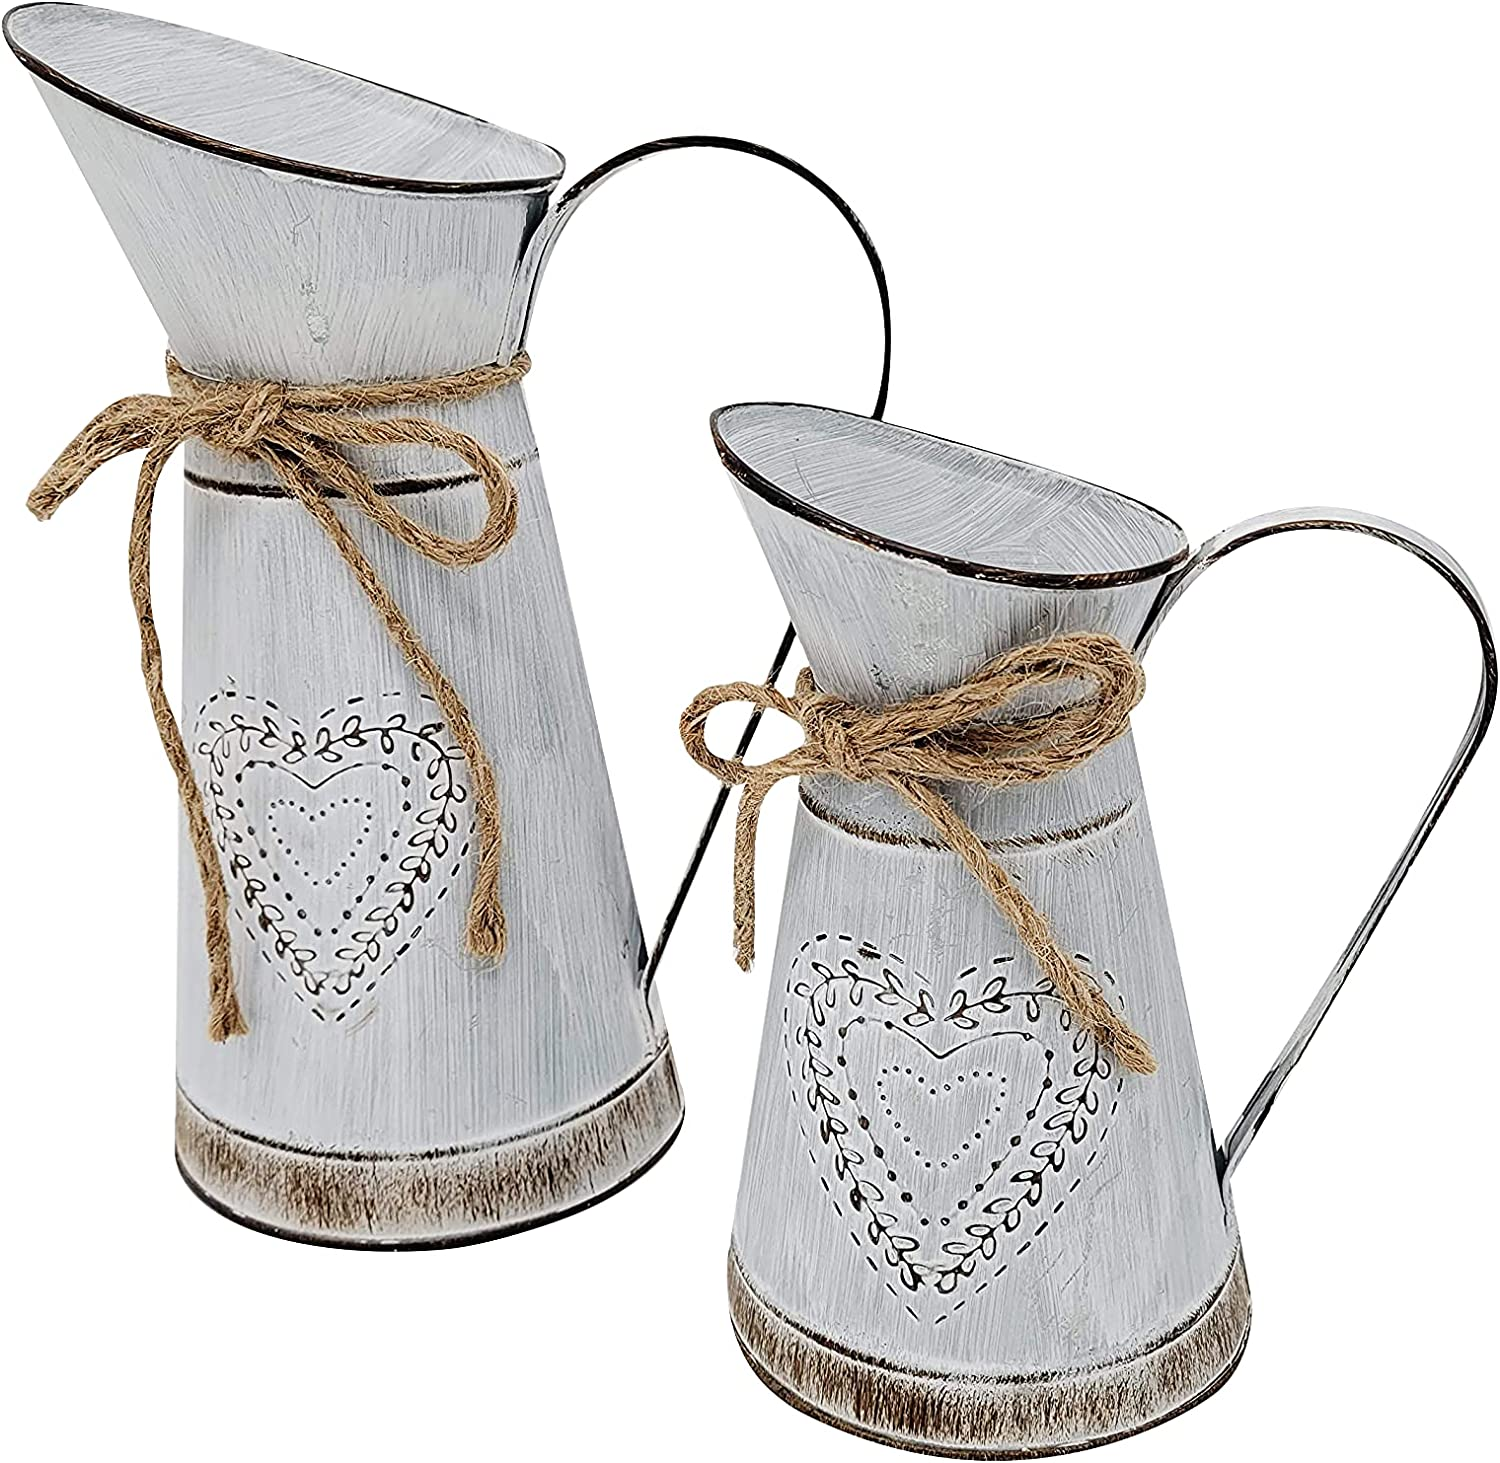 Decorative Rustic Vintage Metal Farmhouse Pitcher Flower Vase Set - White Washed Primitive French Style Shabby Chic Home Decor - Weddings Kitchen Bathroom - Giftable